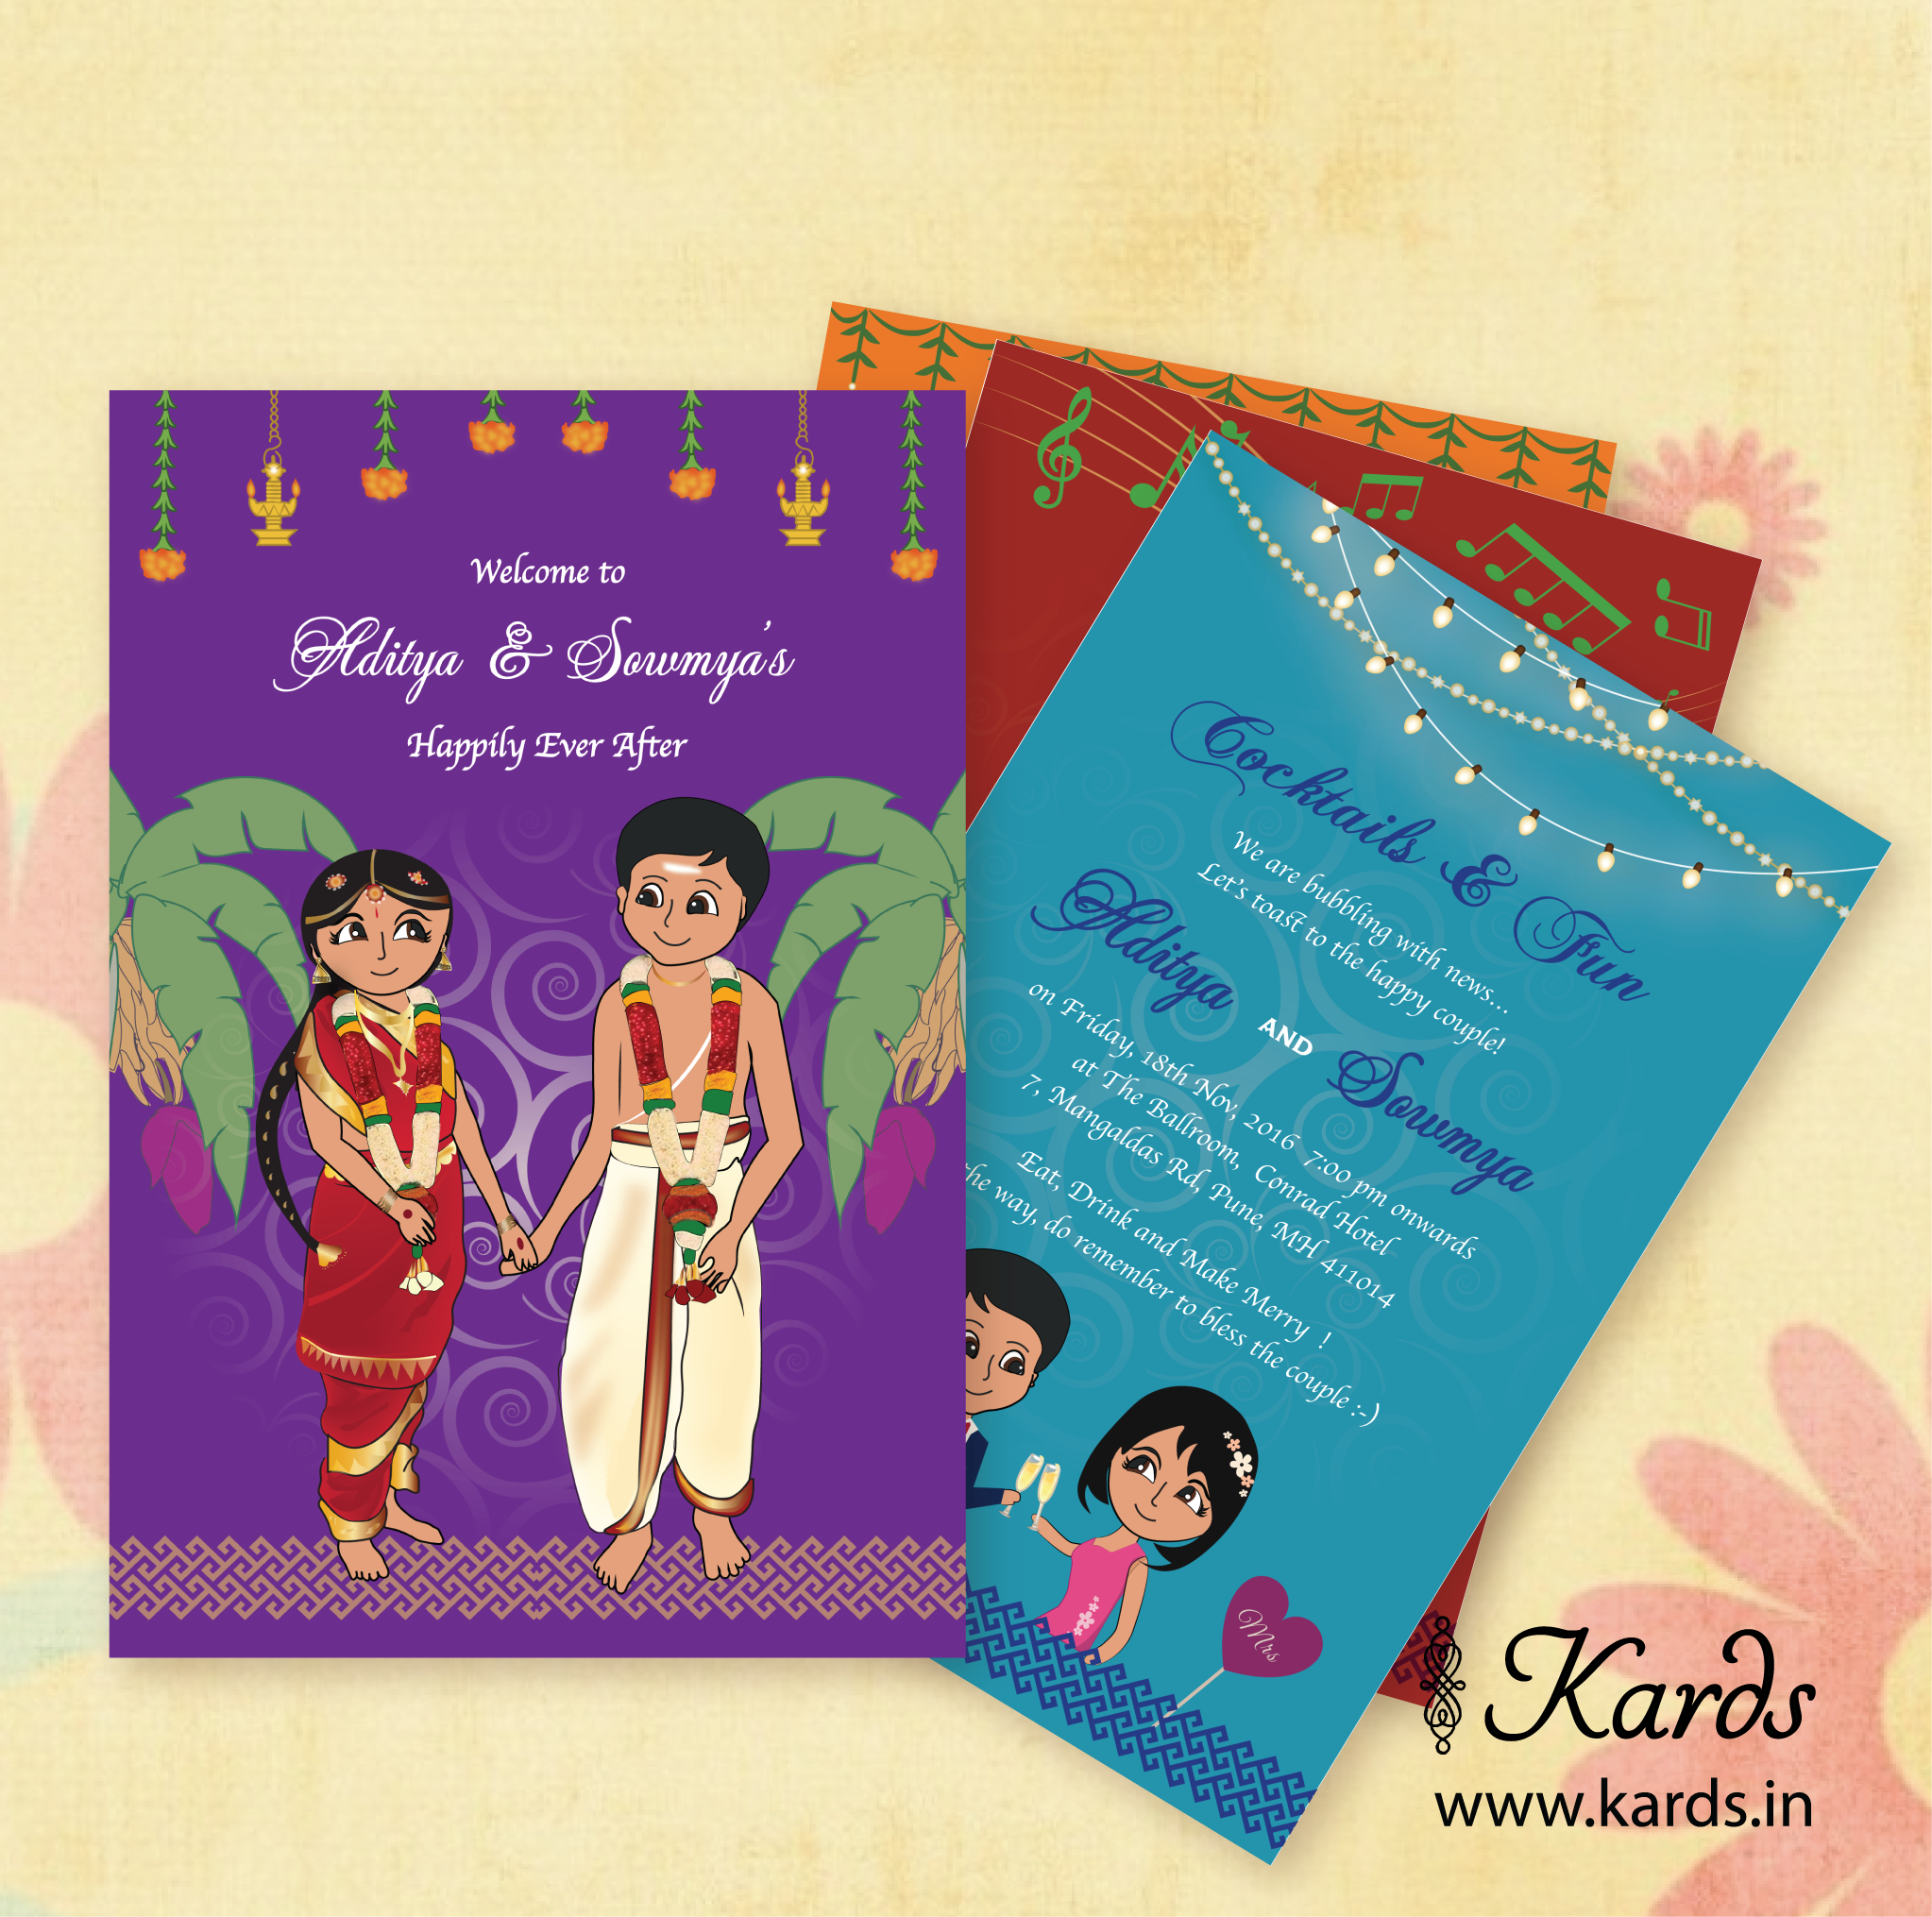 Yet Another Caricature Invitation Depicting A Tamil Brahmin Wedding Creative Wedding Invitations Indian Wedding Invitations Wedding Card Wordings